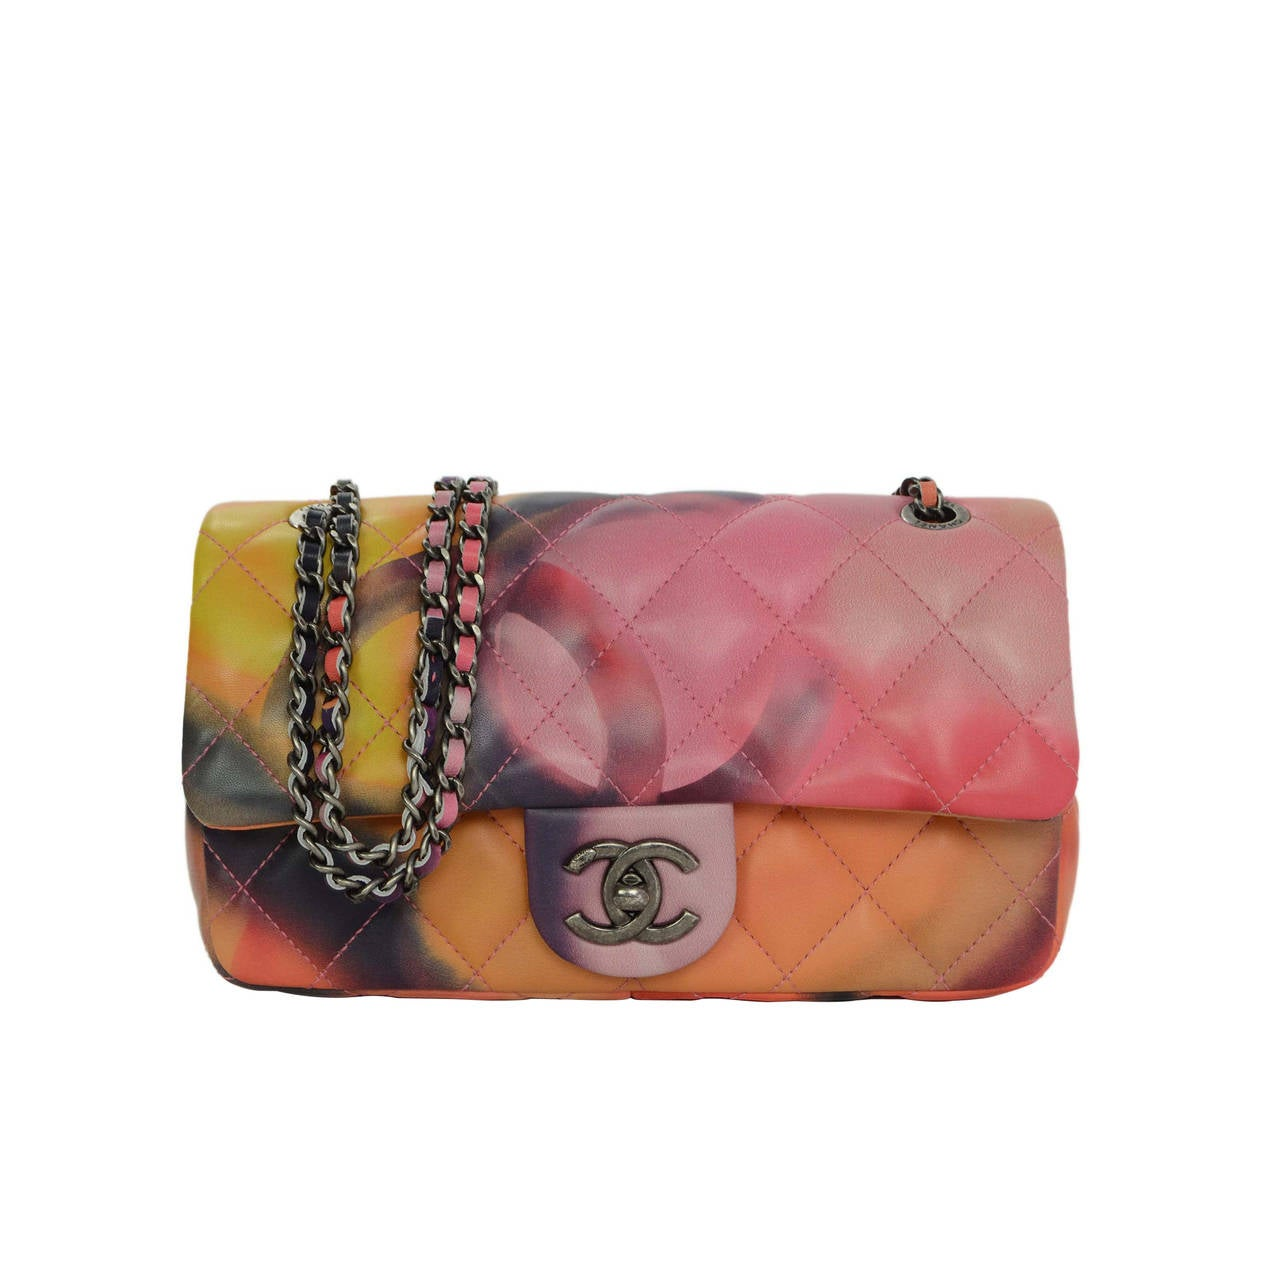 Chanel 15 Multi Color Quilted Leather Flower Power Small